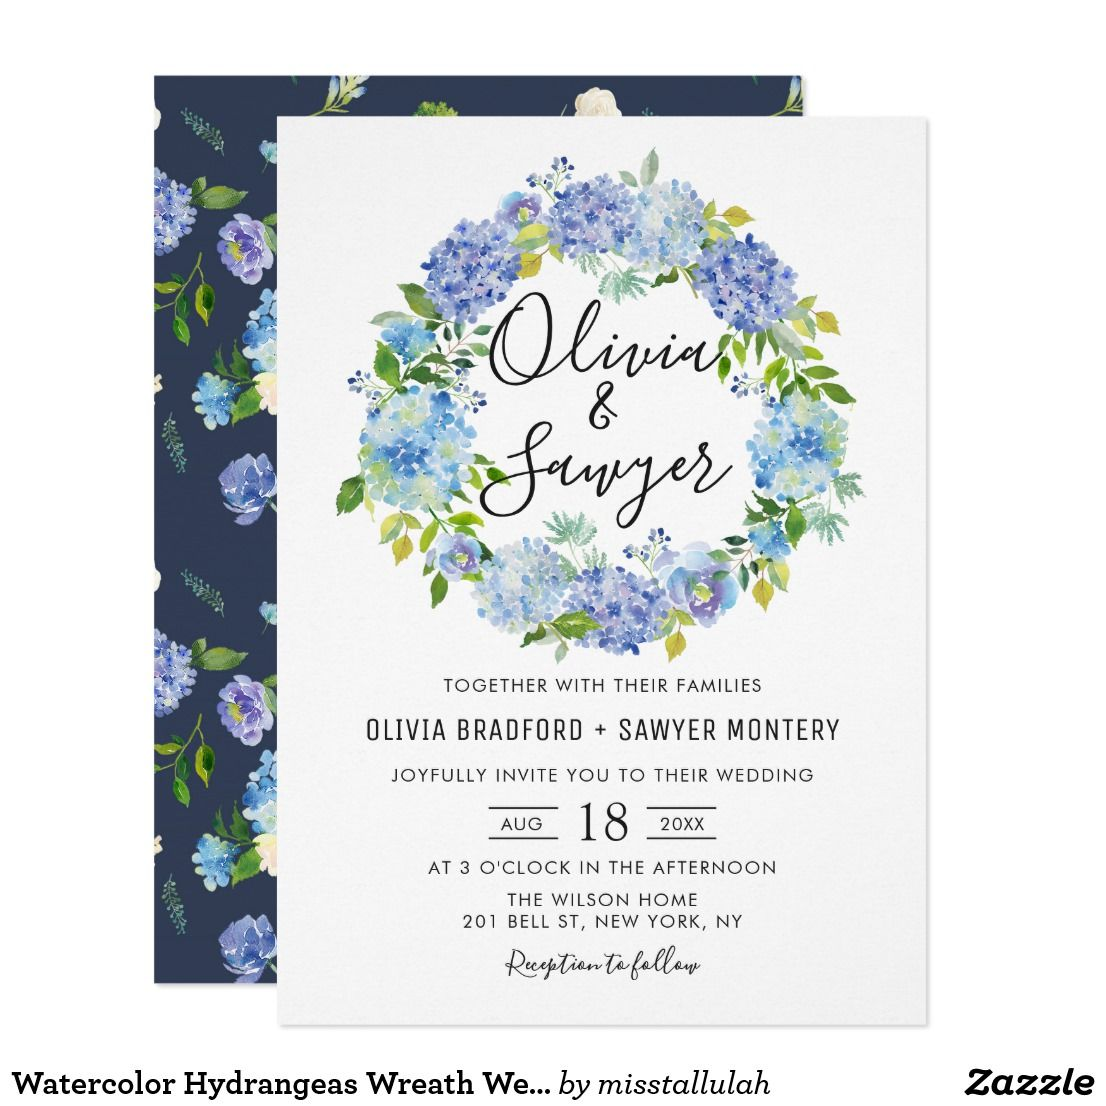 Watercolor Hydrangeas Wreath Wedding Invitation